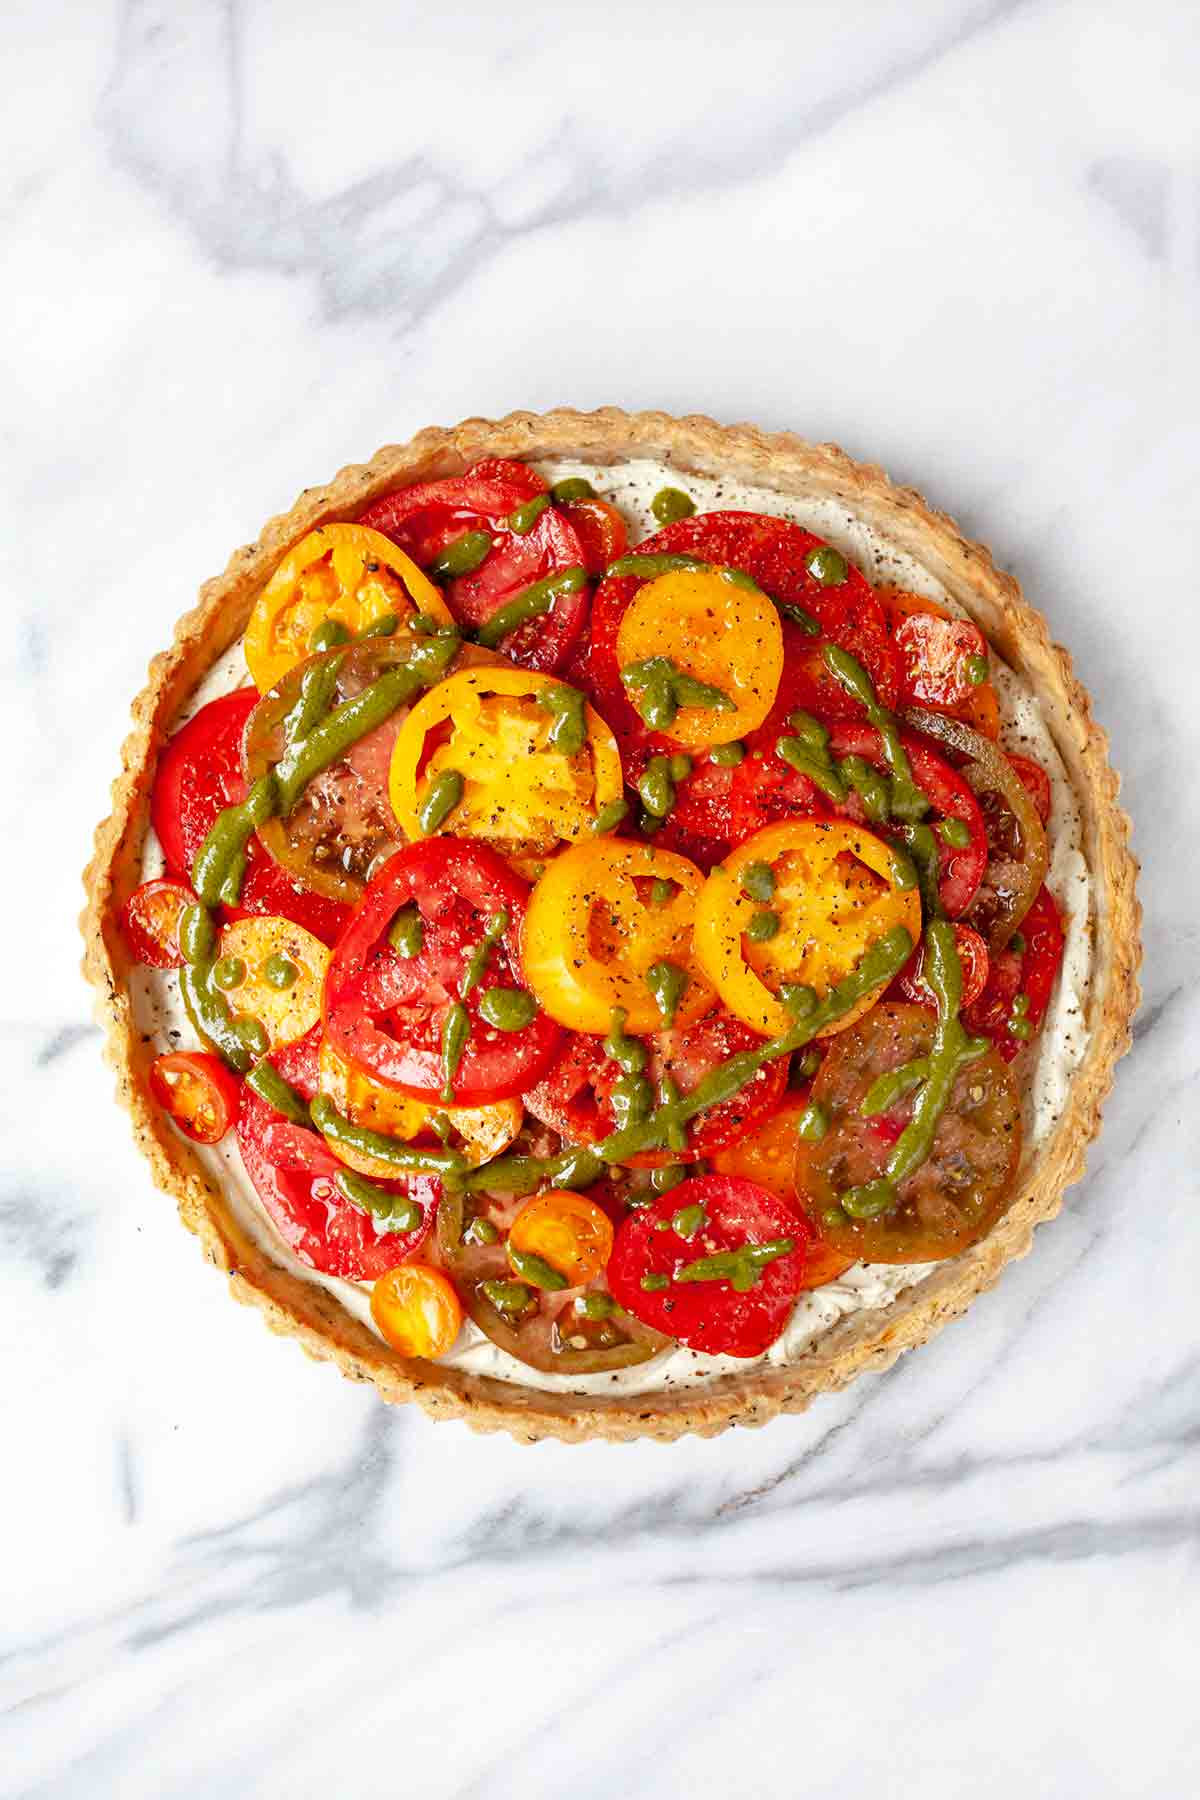 A fresh tomato tart in a herbed crust, drizzled with pesto vinaigrette.